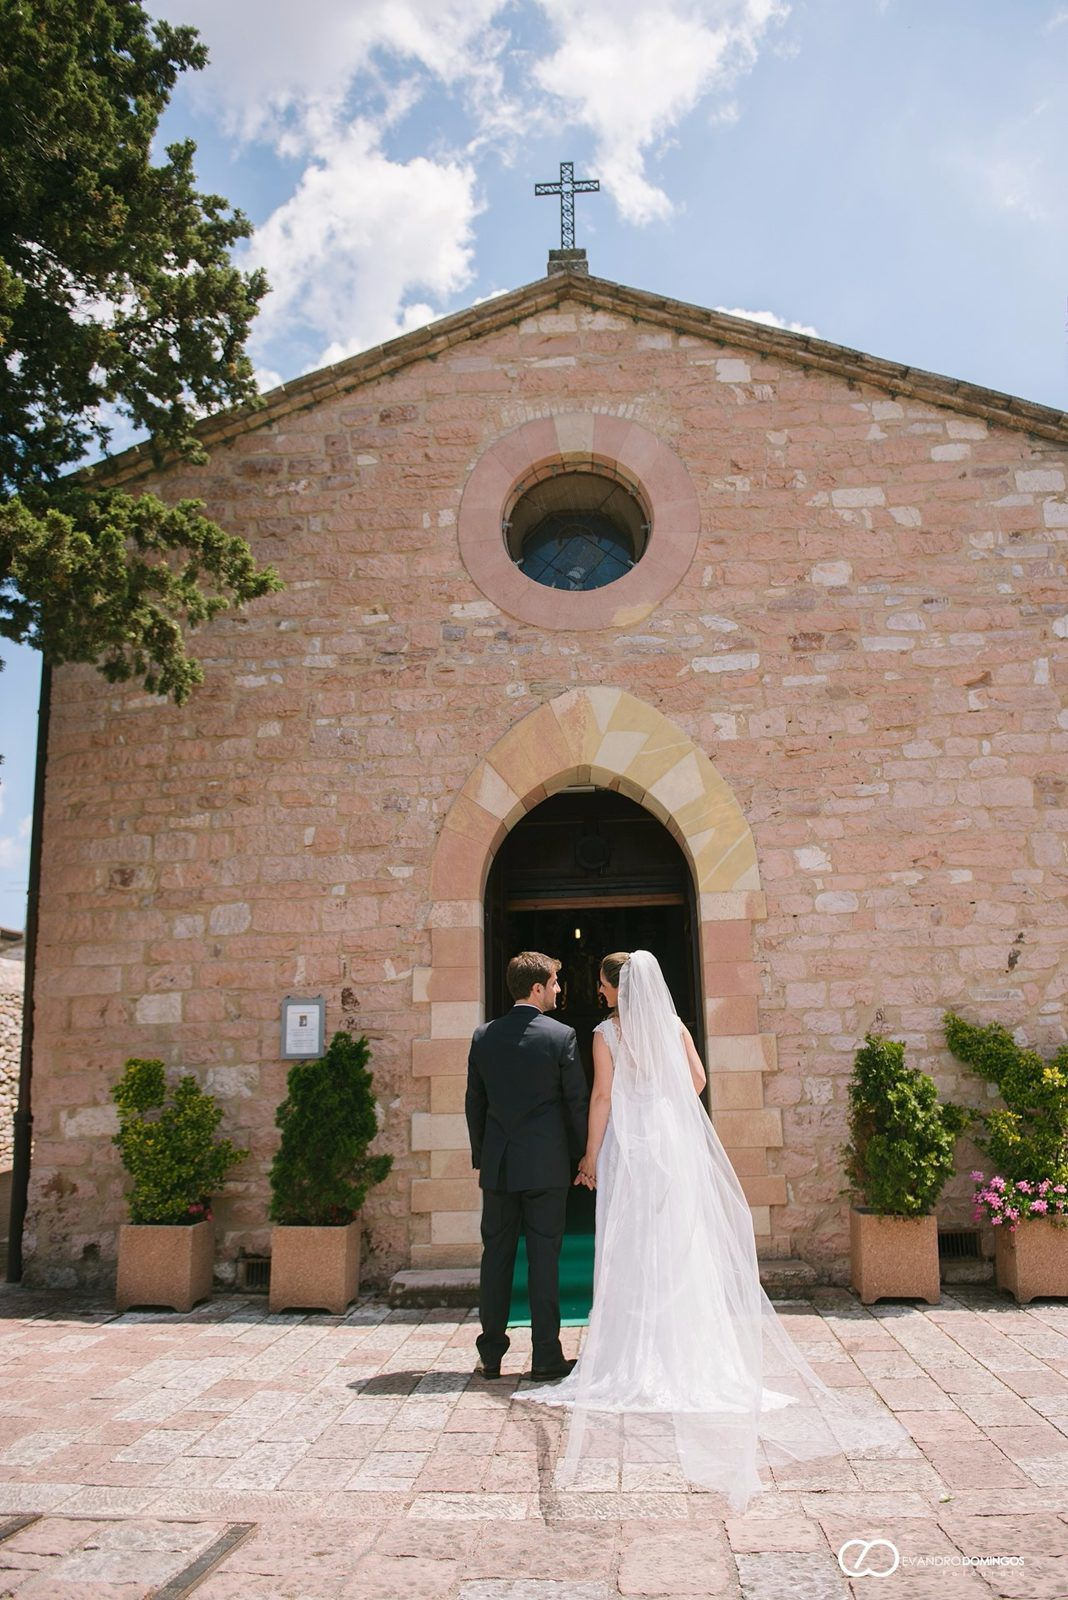 bya-e-guilherme_wedding-italy-wedding-in-assisi-assisi-italy-wedding-photographer-matrimonio-in-italy-say-ido-fotografo-na-italia-fotografo-na-europa-68 Destination wedding na Itália: Bya e Guilherme